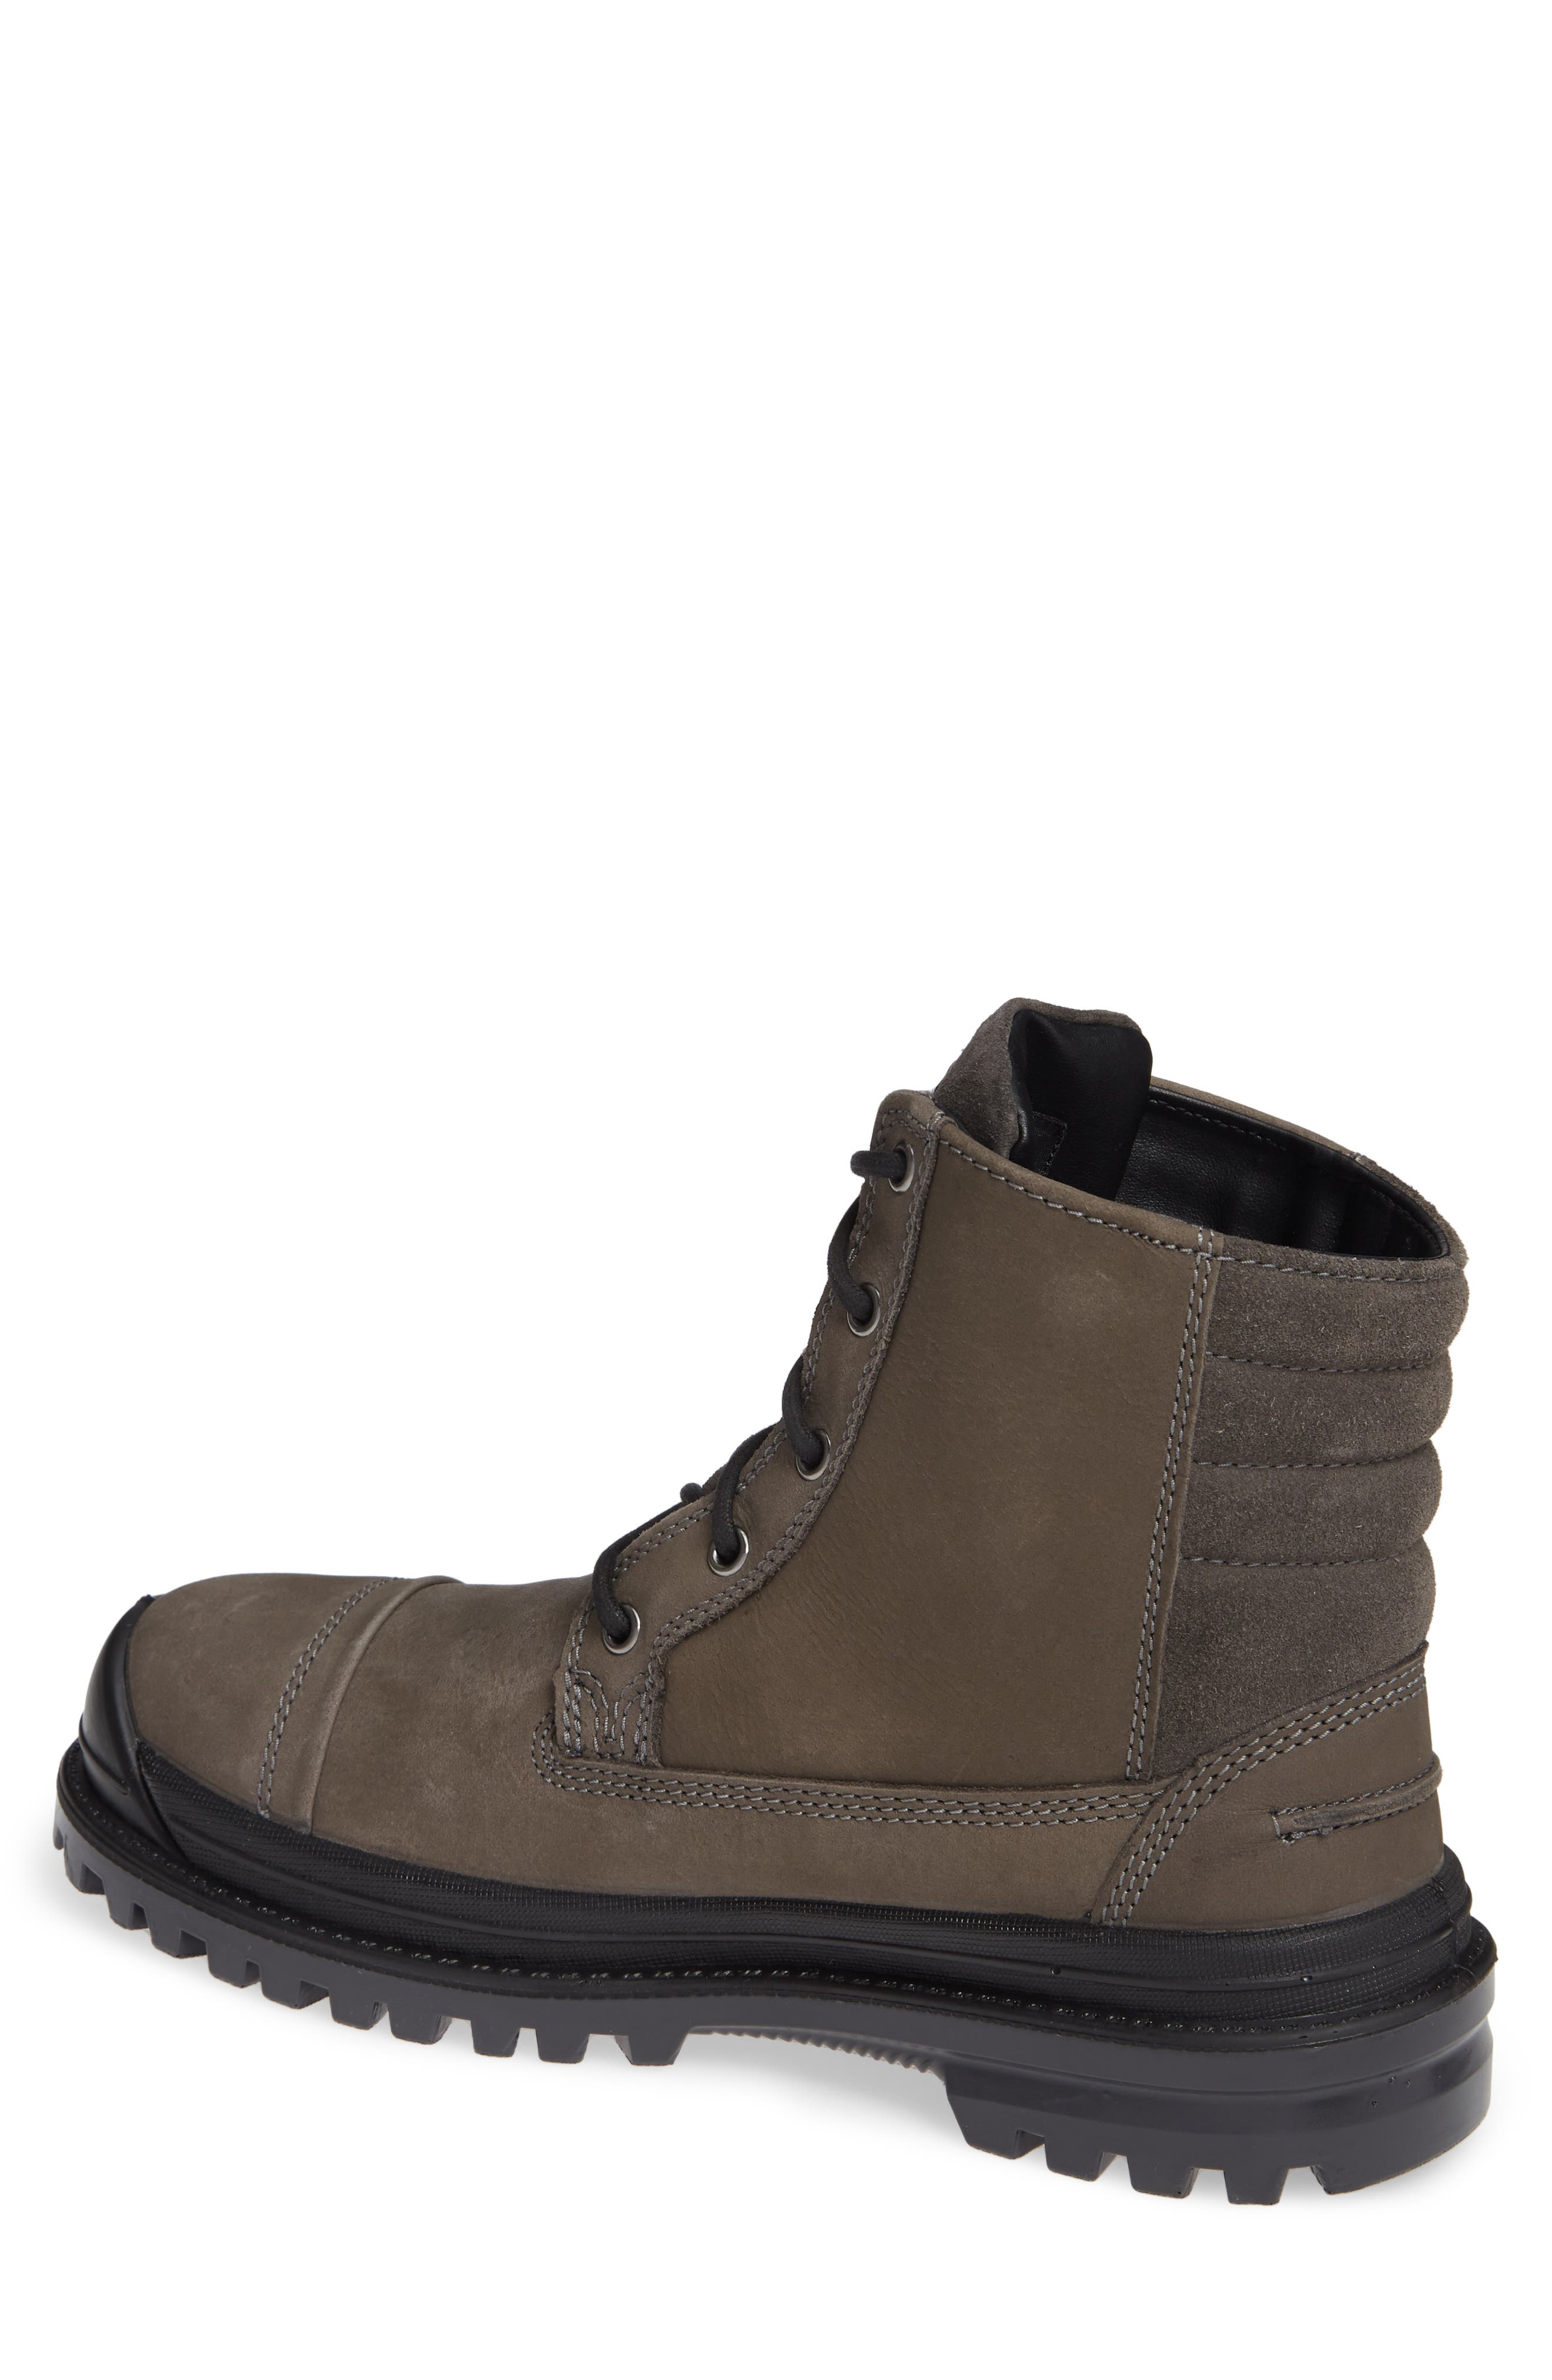 Griffon Waterproof Boot,                             Alternate thumbnail 2, color,                             CHARCOAL LEATHER